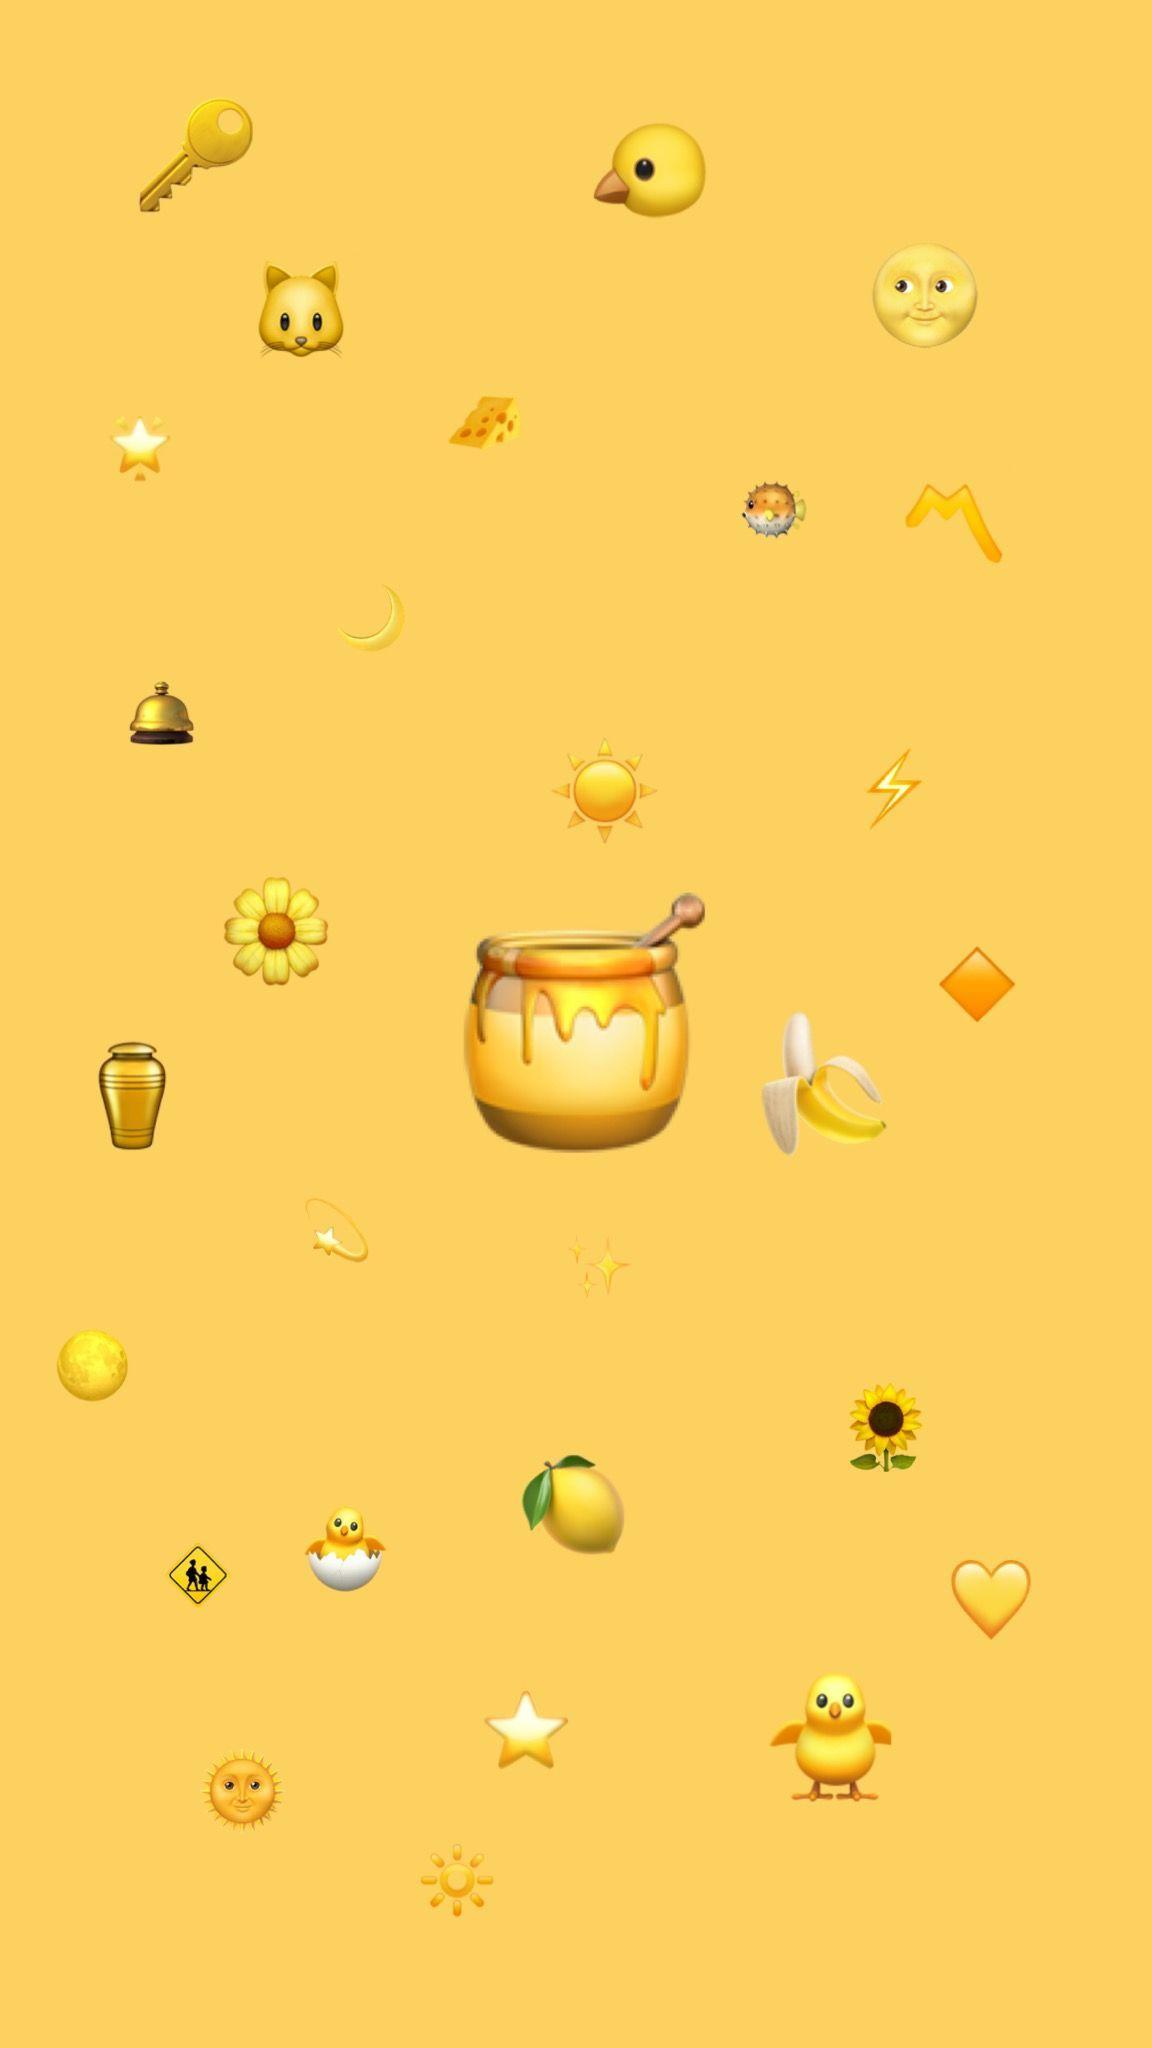 Cute Aesthetic Yellow Wallpapers - Wallpaper Cave